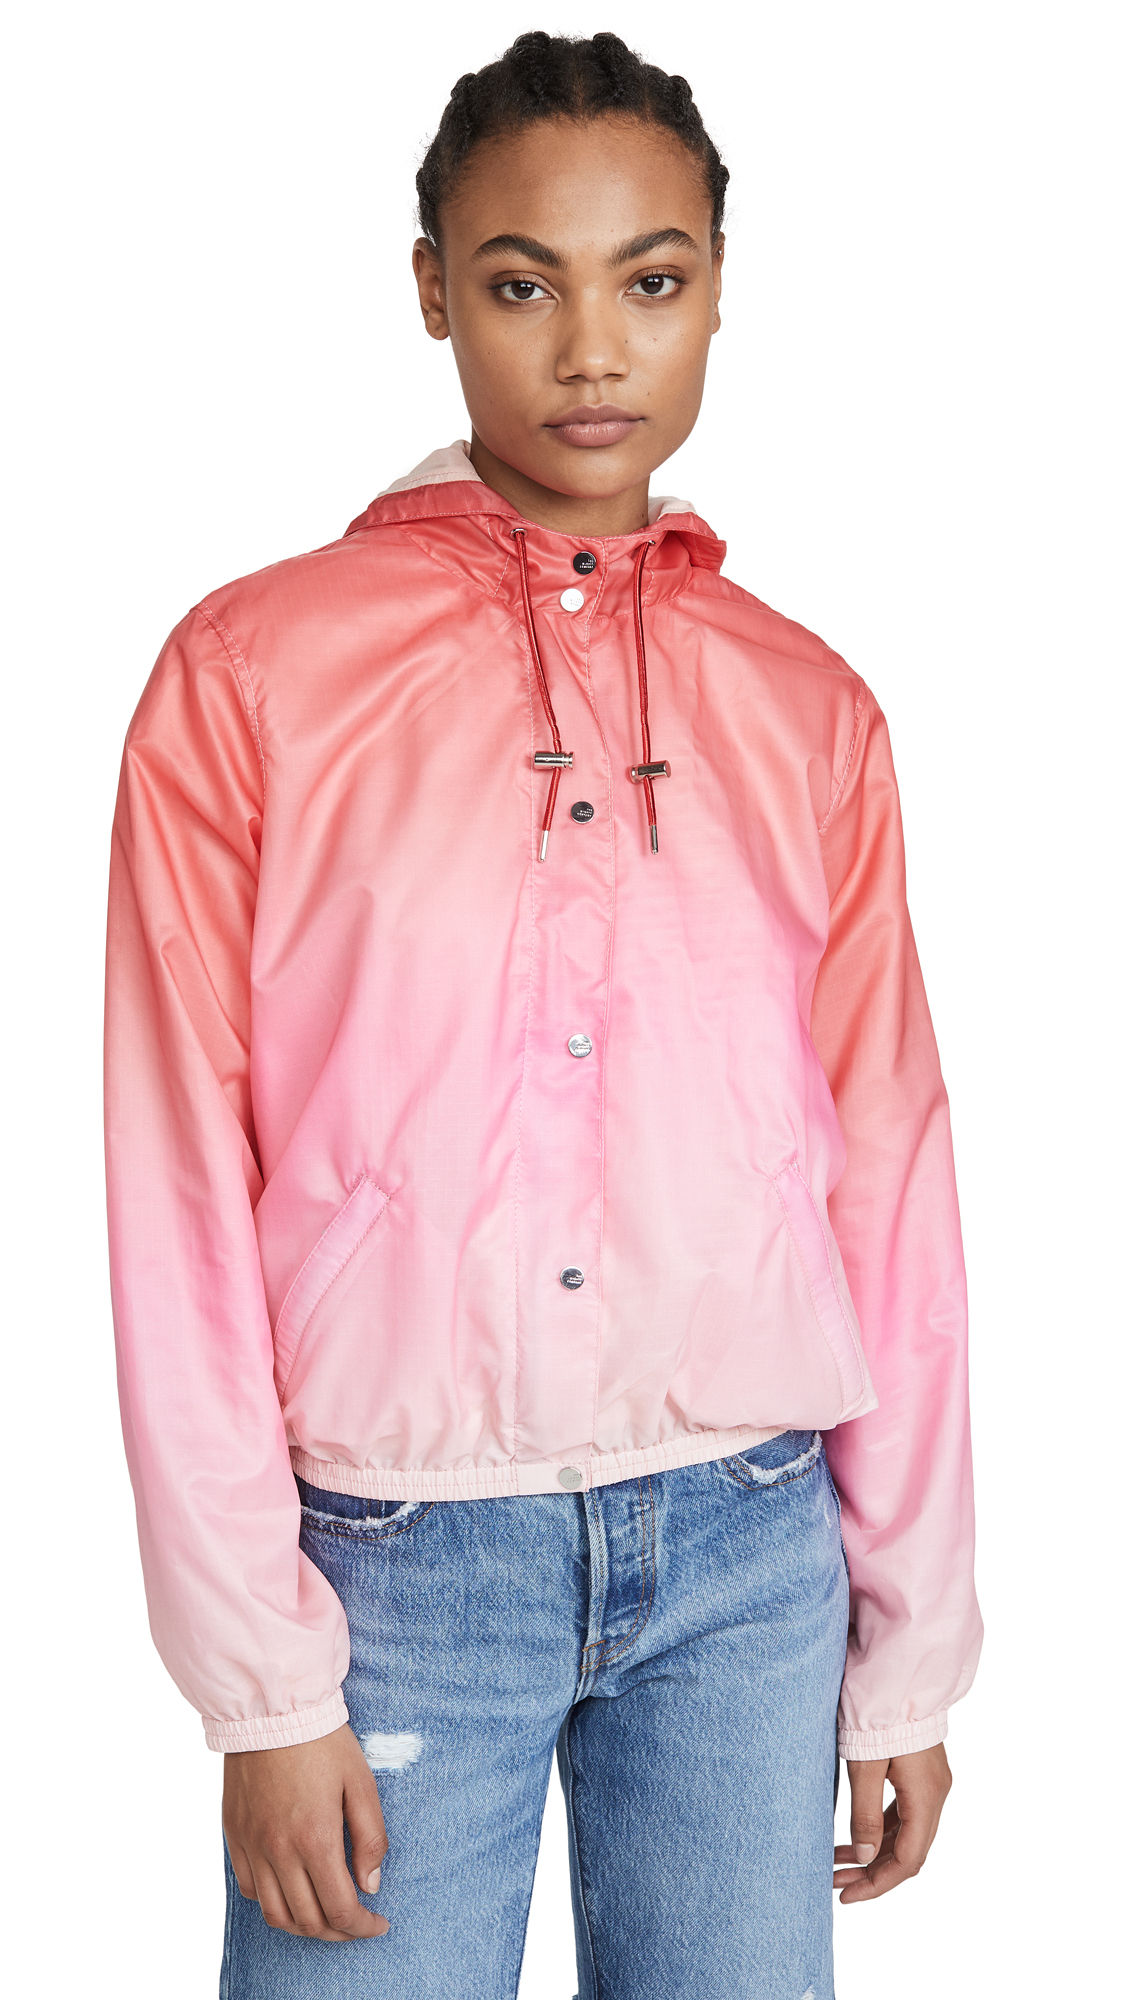 Buy The Mighty Company Winslow Track Jacket online beautiful The Mighty Company Clothing, Jackets